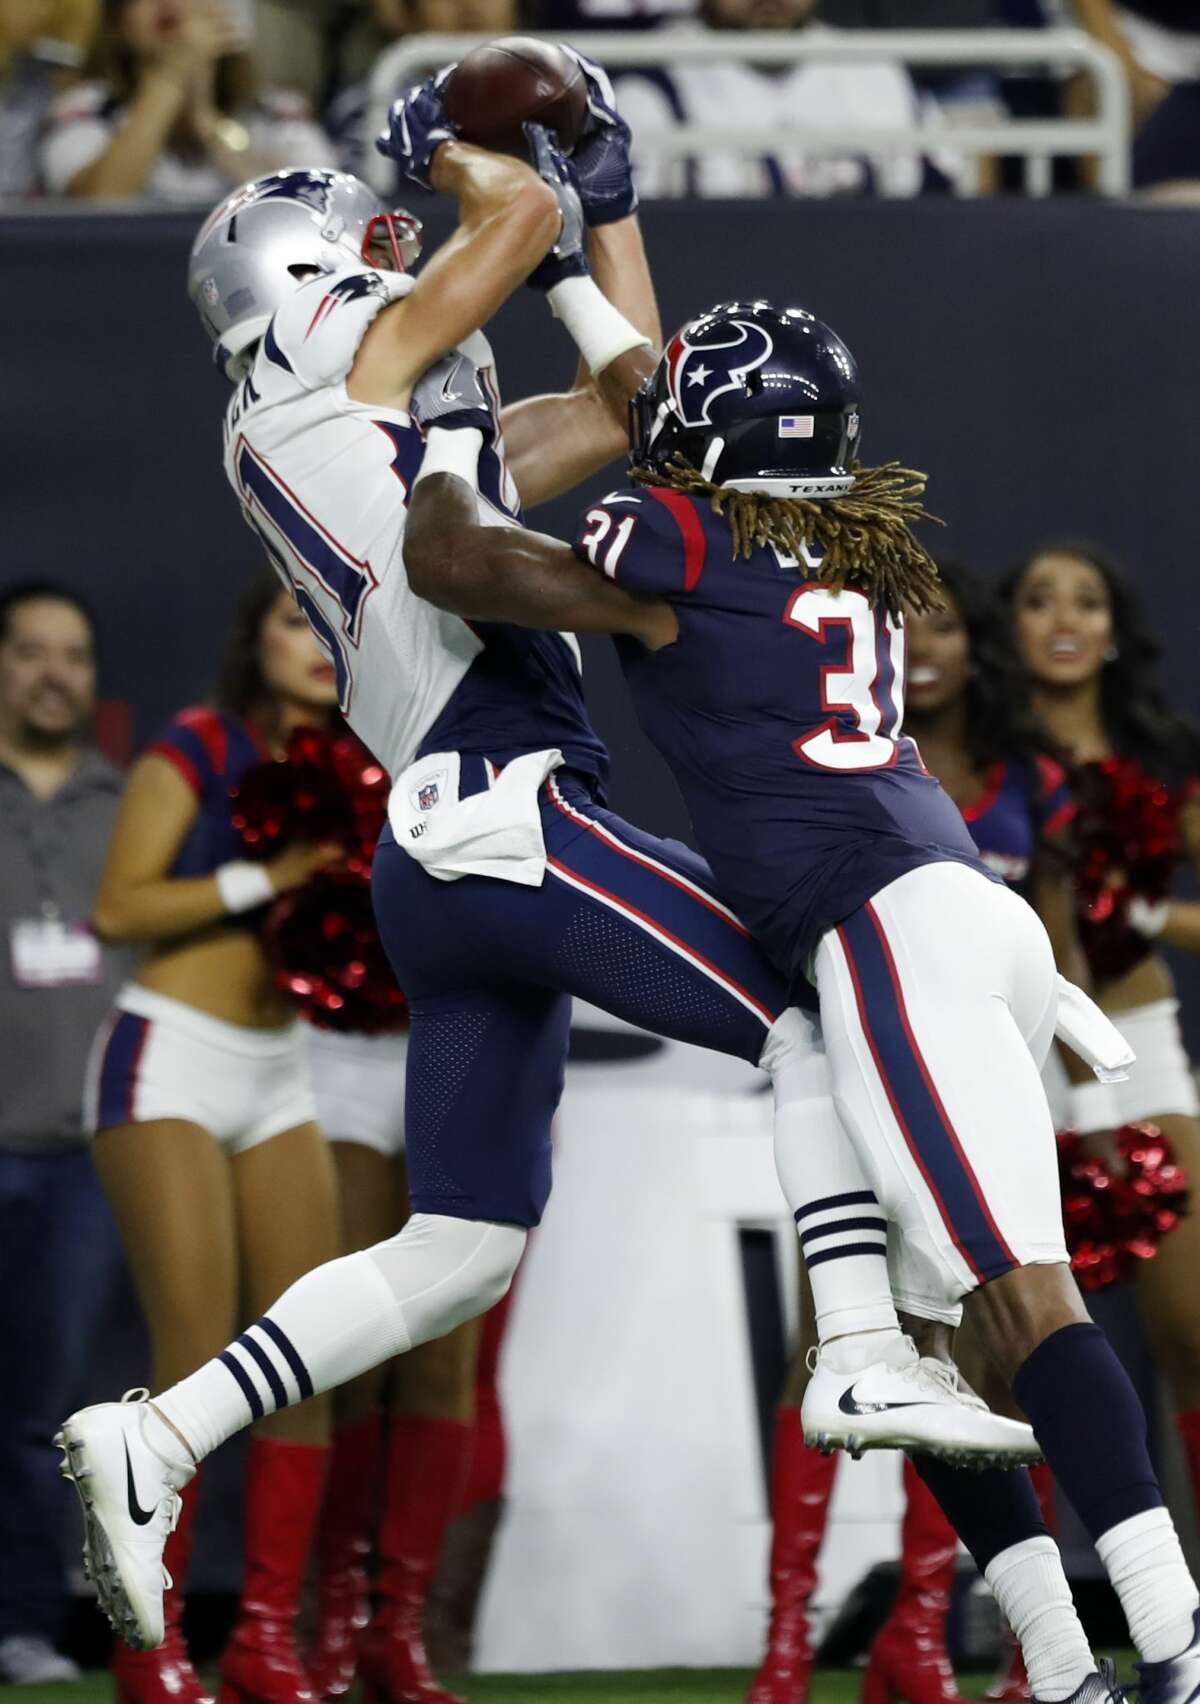 Houston Texans cornerback Treston Decoud (31) breaks up a pass in the end zone intended for New England Patriots tight end Cody Hollister (81) during the fourth quarter of an NFL preseason game at NRG Stadium, Saturday, Aug. 19, 2017, in Houston. ( Karen Warren / Houston Chronicle )